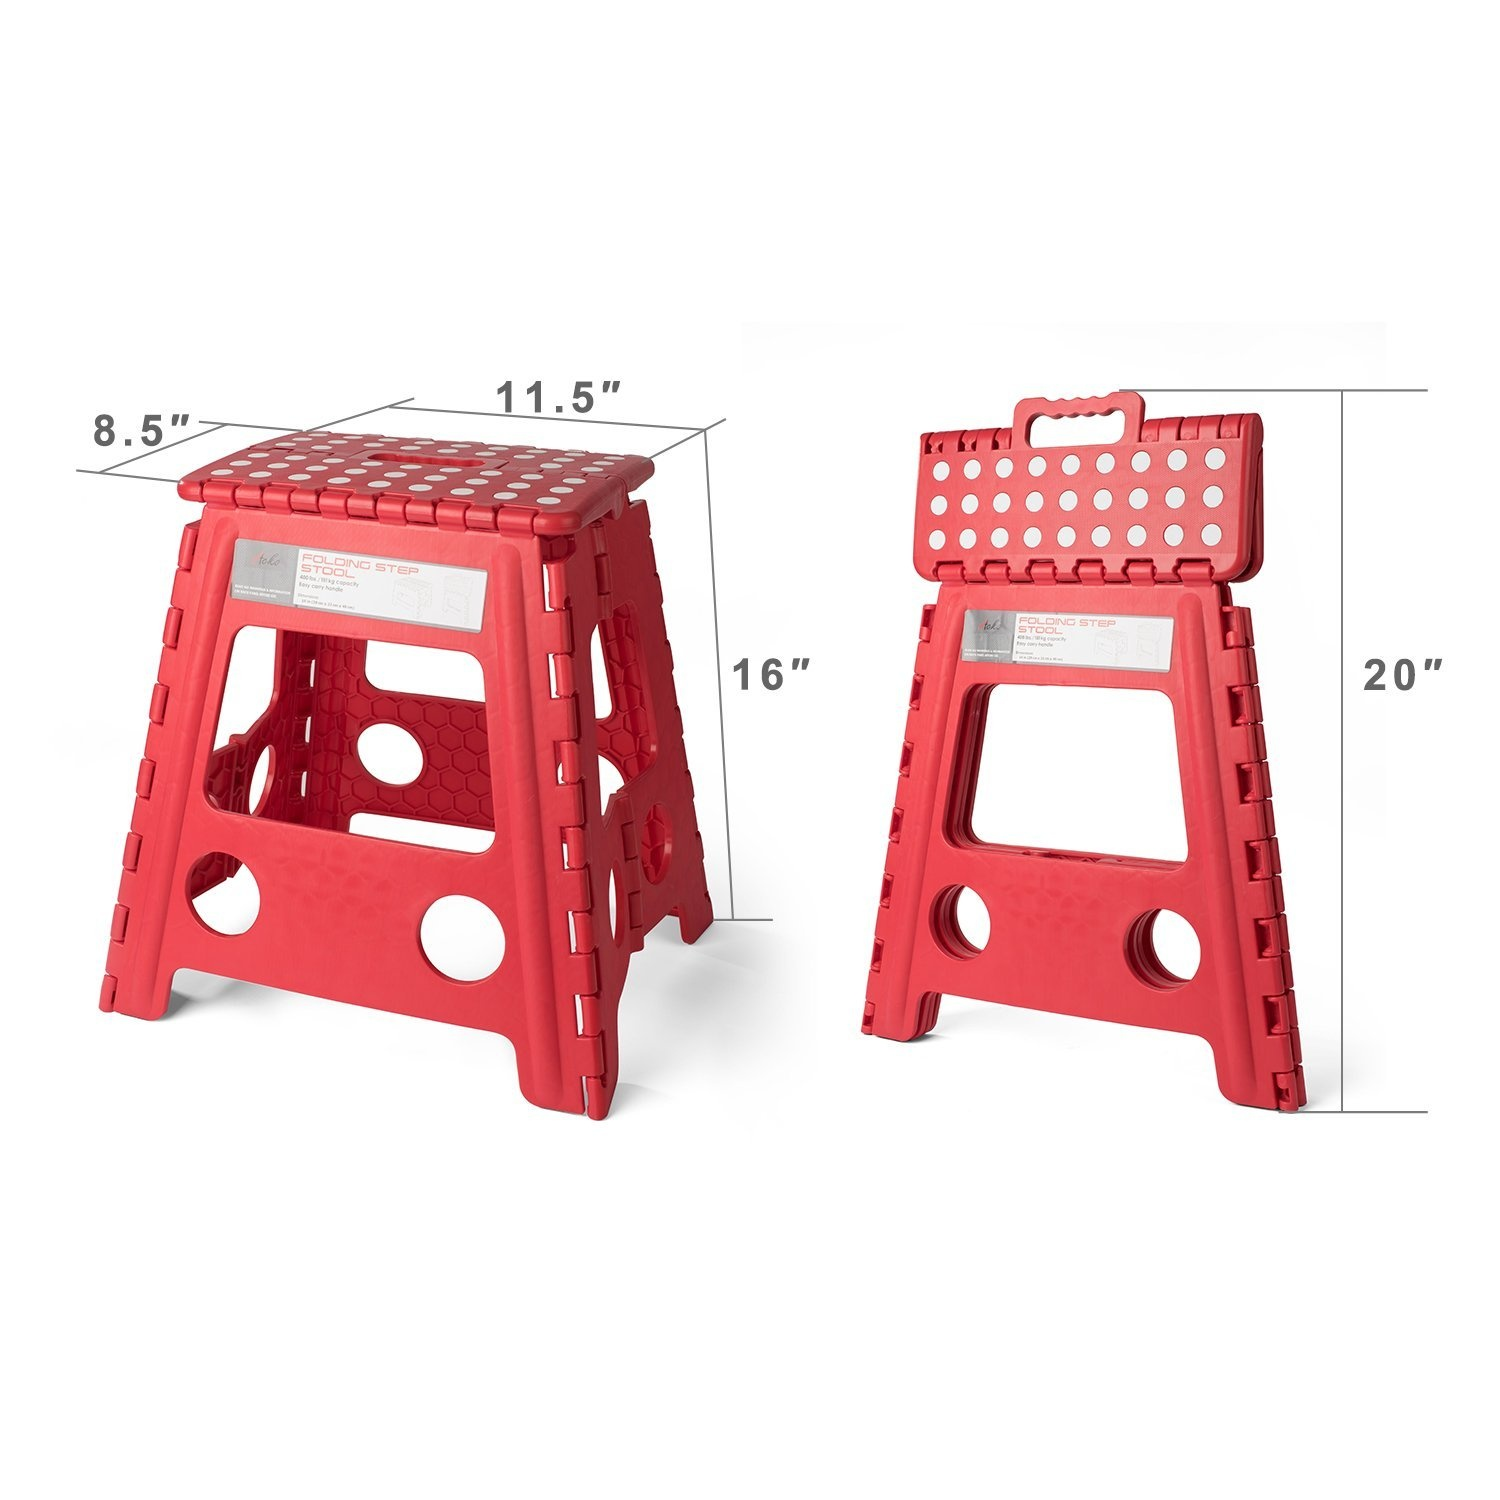 safety lovely seat handicap bench in transfer used shower heavy step duty bathtub north stool bath wooden kids of chair inspirational for small myrtle foot